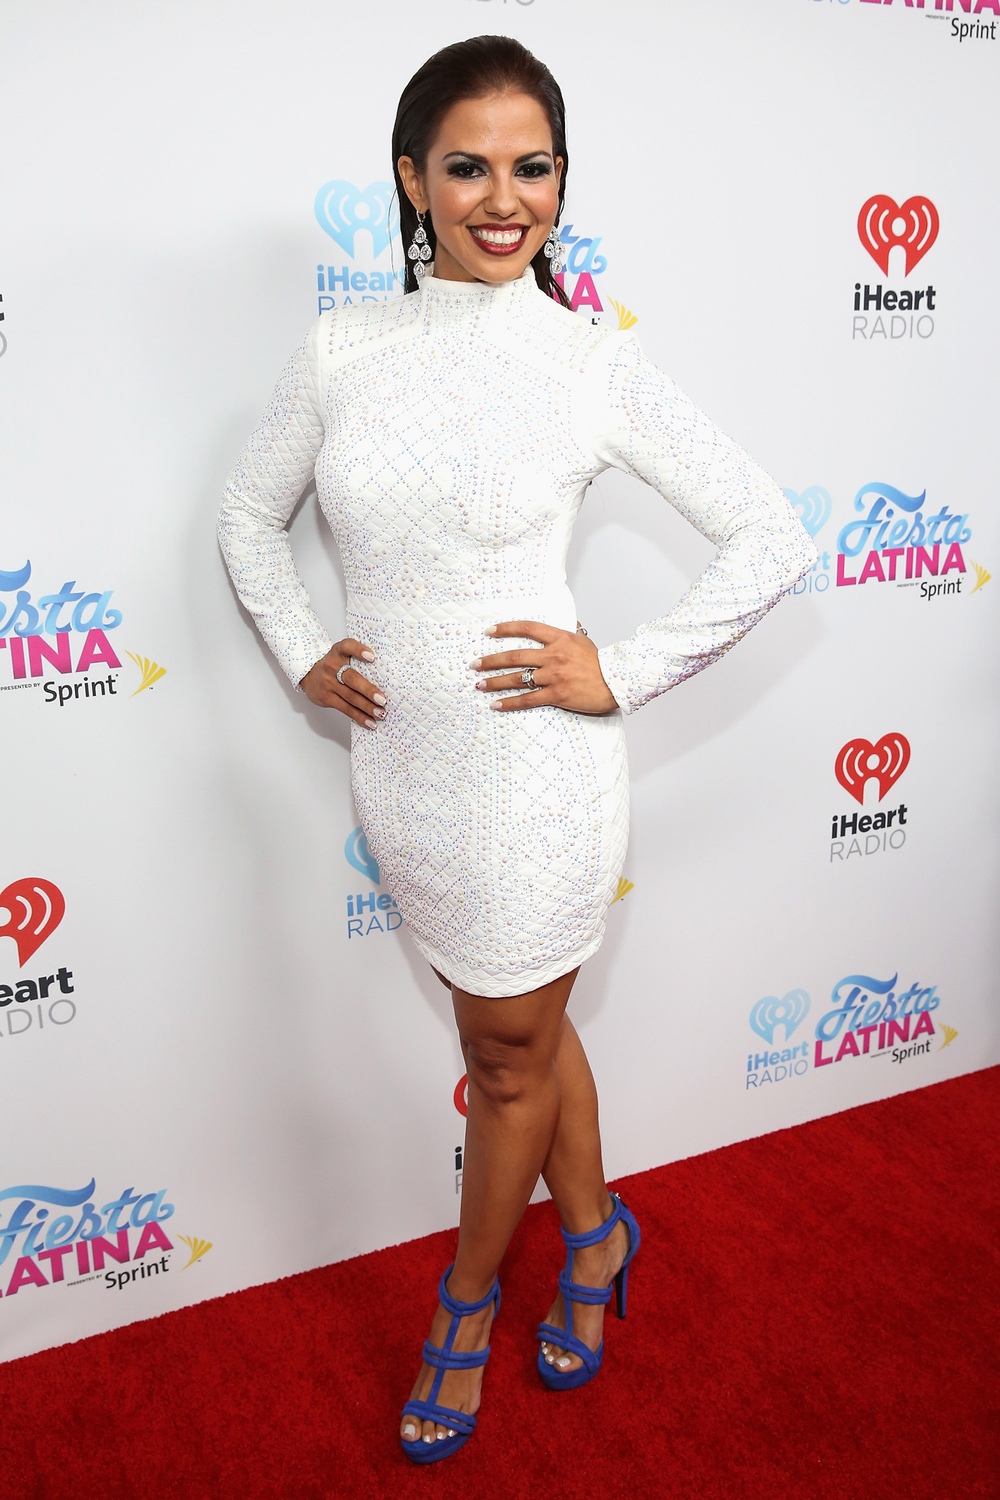 MIAMI, FL - NOVEMBER 07: Jenny Castillo attends iHeartRadio Fiesta Latina presented by Sprint at American Airlines Arena on November 7, 2015 in Miami, Florida.  (Photo by Aaron Davidson/Getty Images for iHeartMedia) *** Local Caption *** Jenny Castillo